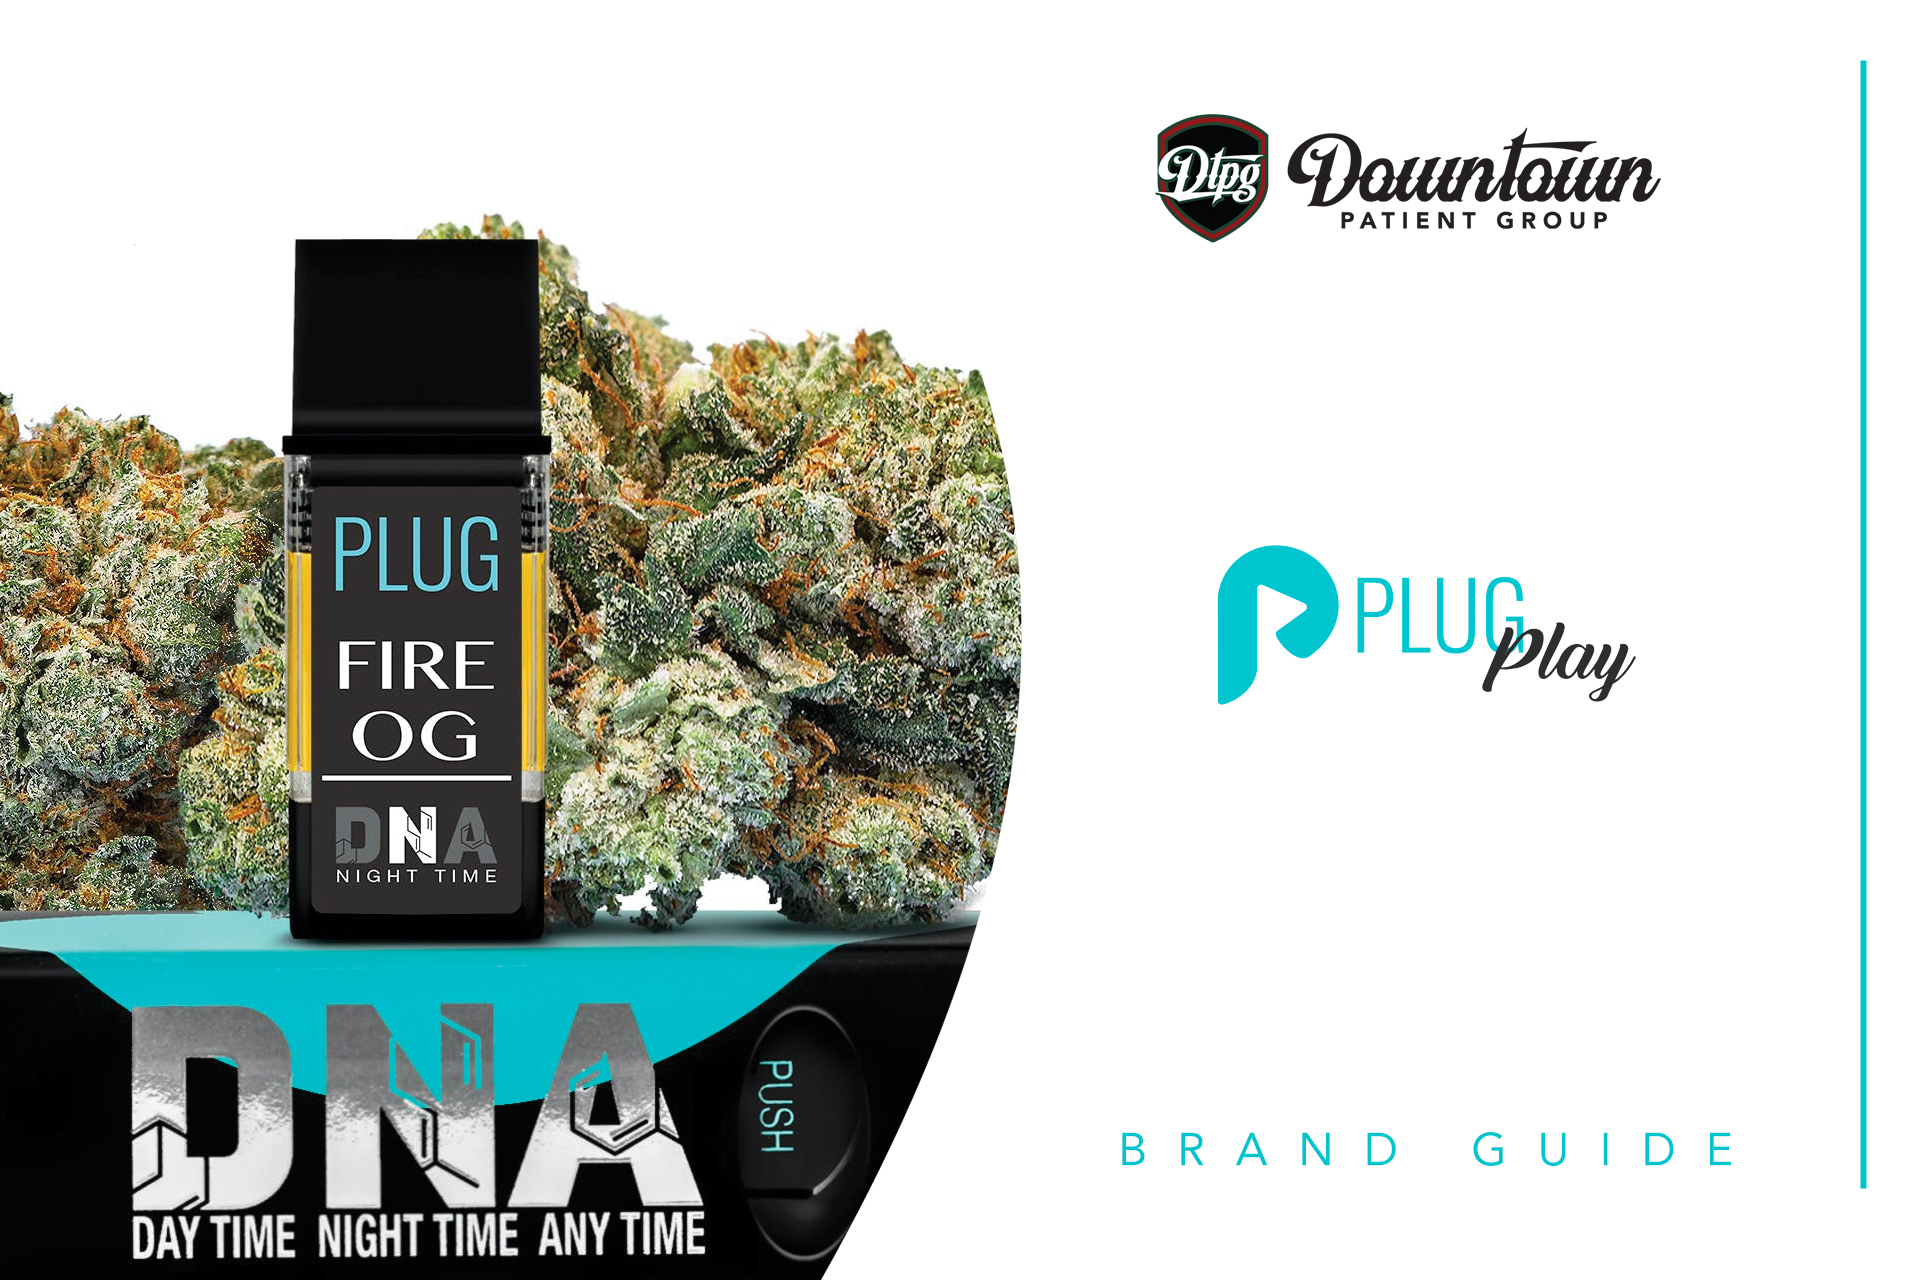 PLUGplay Brand Guide: Exotic Flower, Flavorful Vape Pods, and Powerful Battery Kits At DTPG